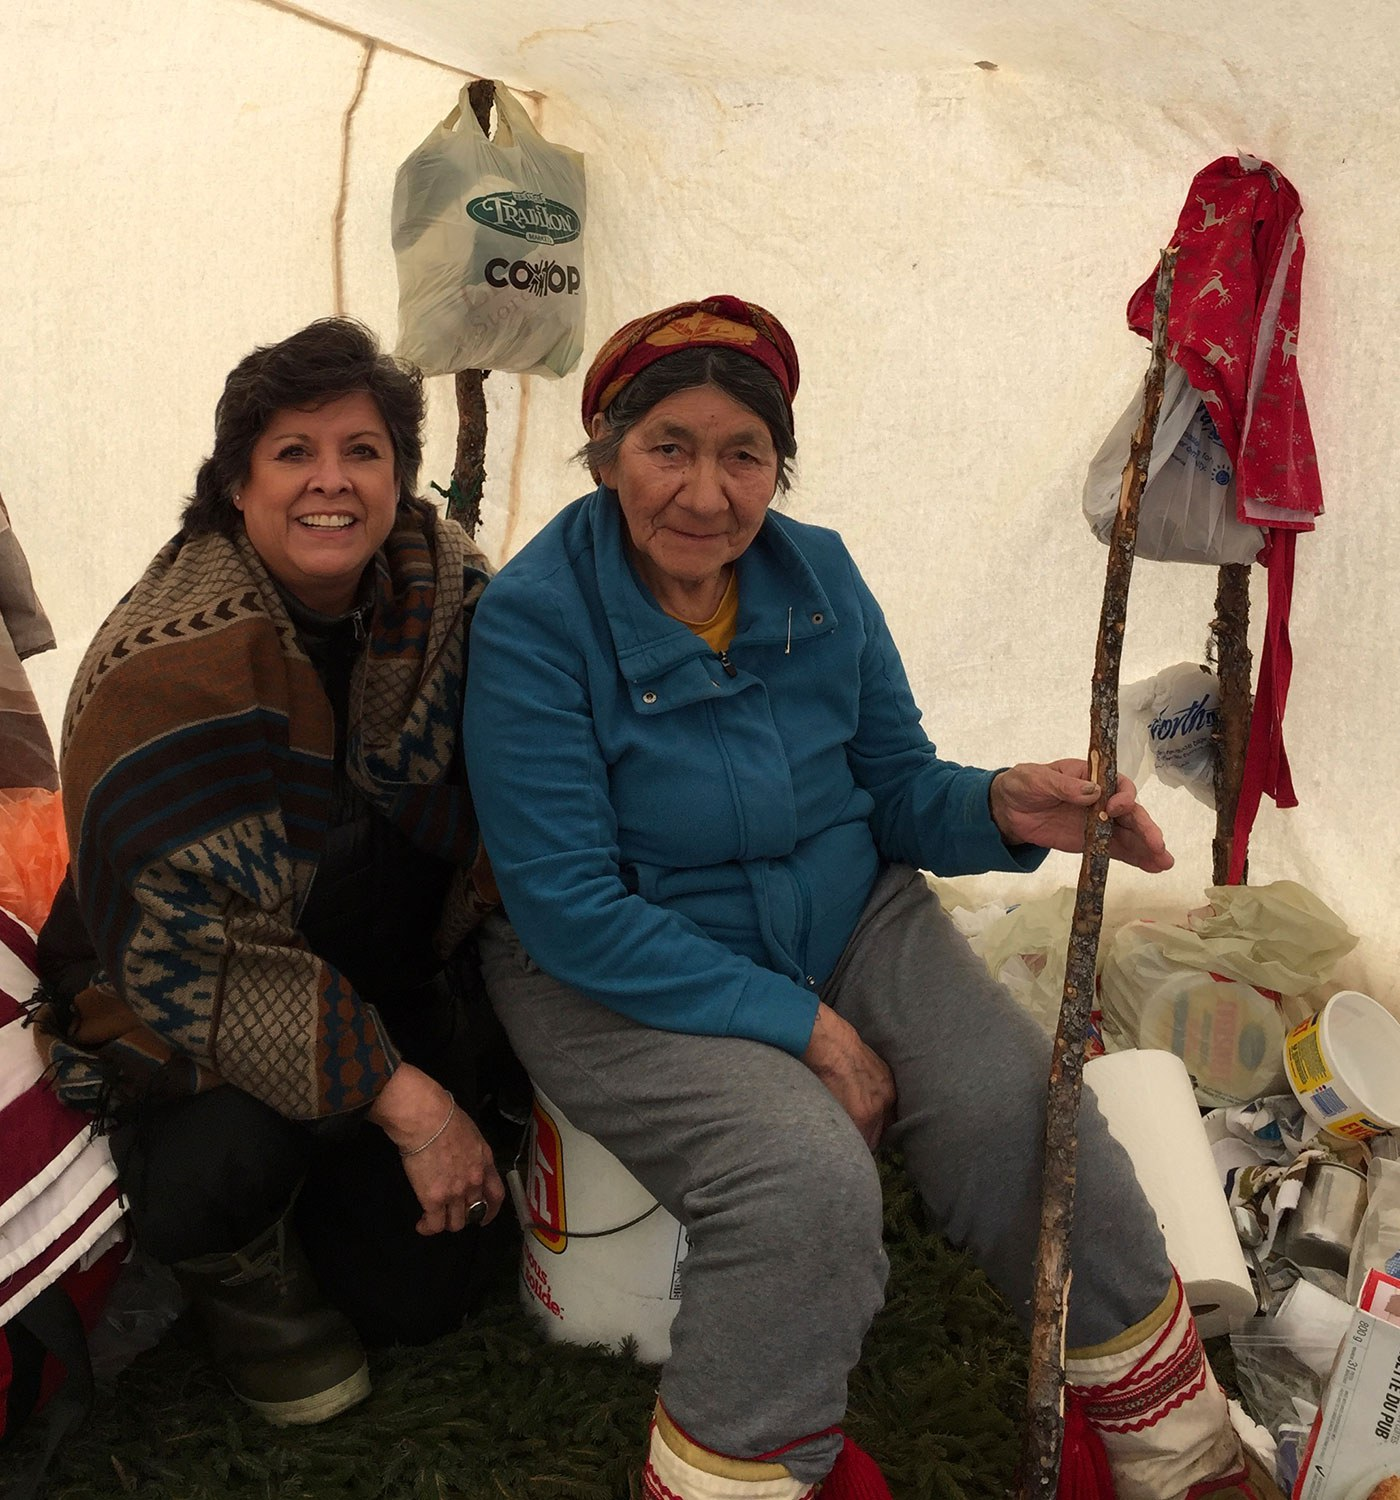 Dr. Wesley-Esquimaux (left) with Elizabeth Penashue, who was born into an Innu hunting and trapping family that lived at Kanekuanikat, between Esker and Churchill Falls, Labrador. Penashue moved to Sheshatshiu in the 1960s when her family and her people were encouraged to relocate in order to integrate them into Canadian society through education and a more settled lifestyle. Photo courtesy of the author.